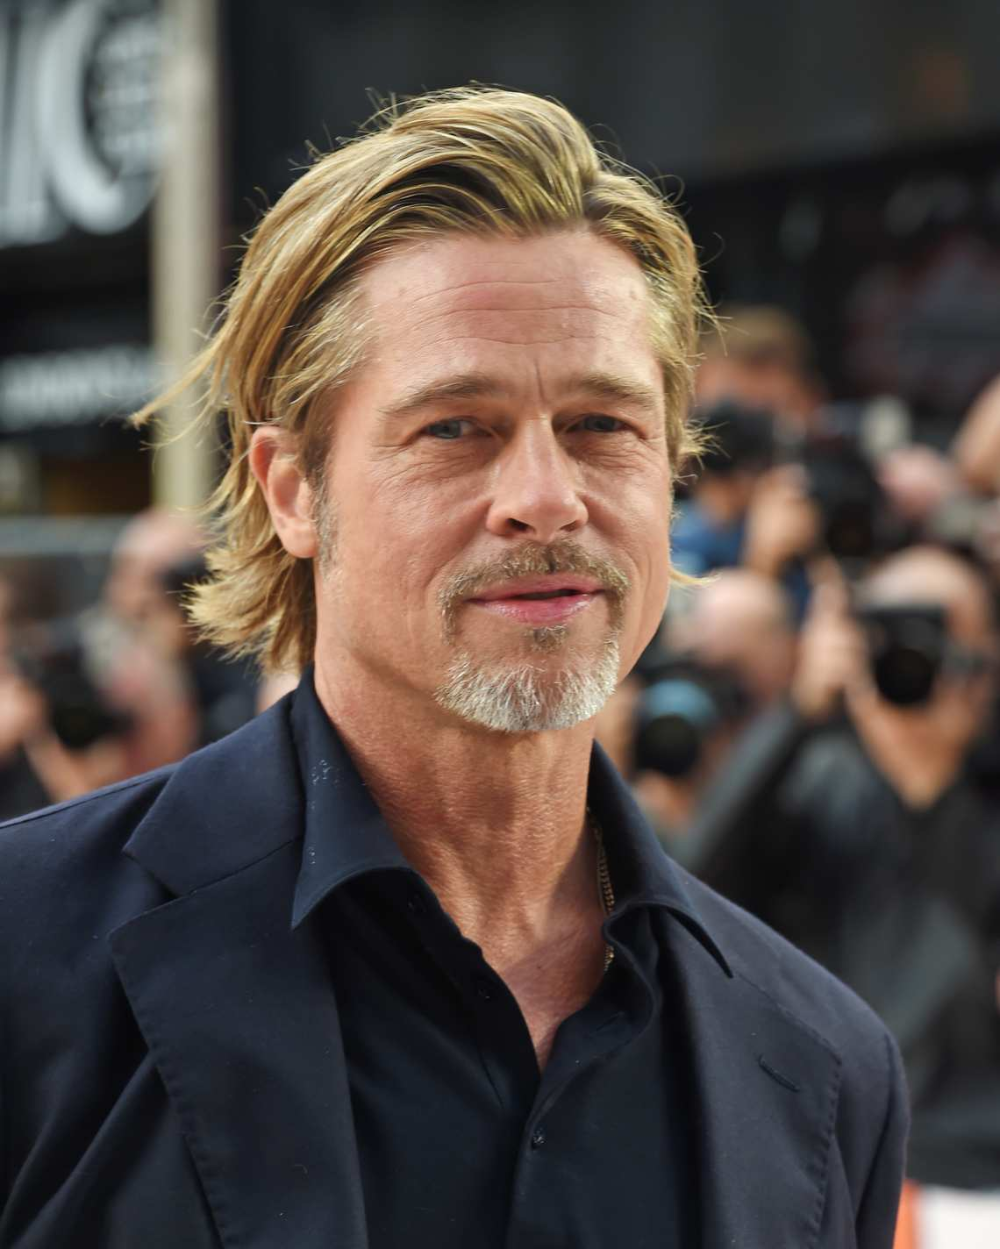 10 Beautiful Photos Of Brad Pitt In Middle Age Brad Pitt Hair Brad Pitt Haircut Brad Pitt